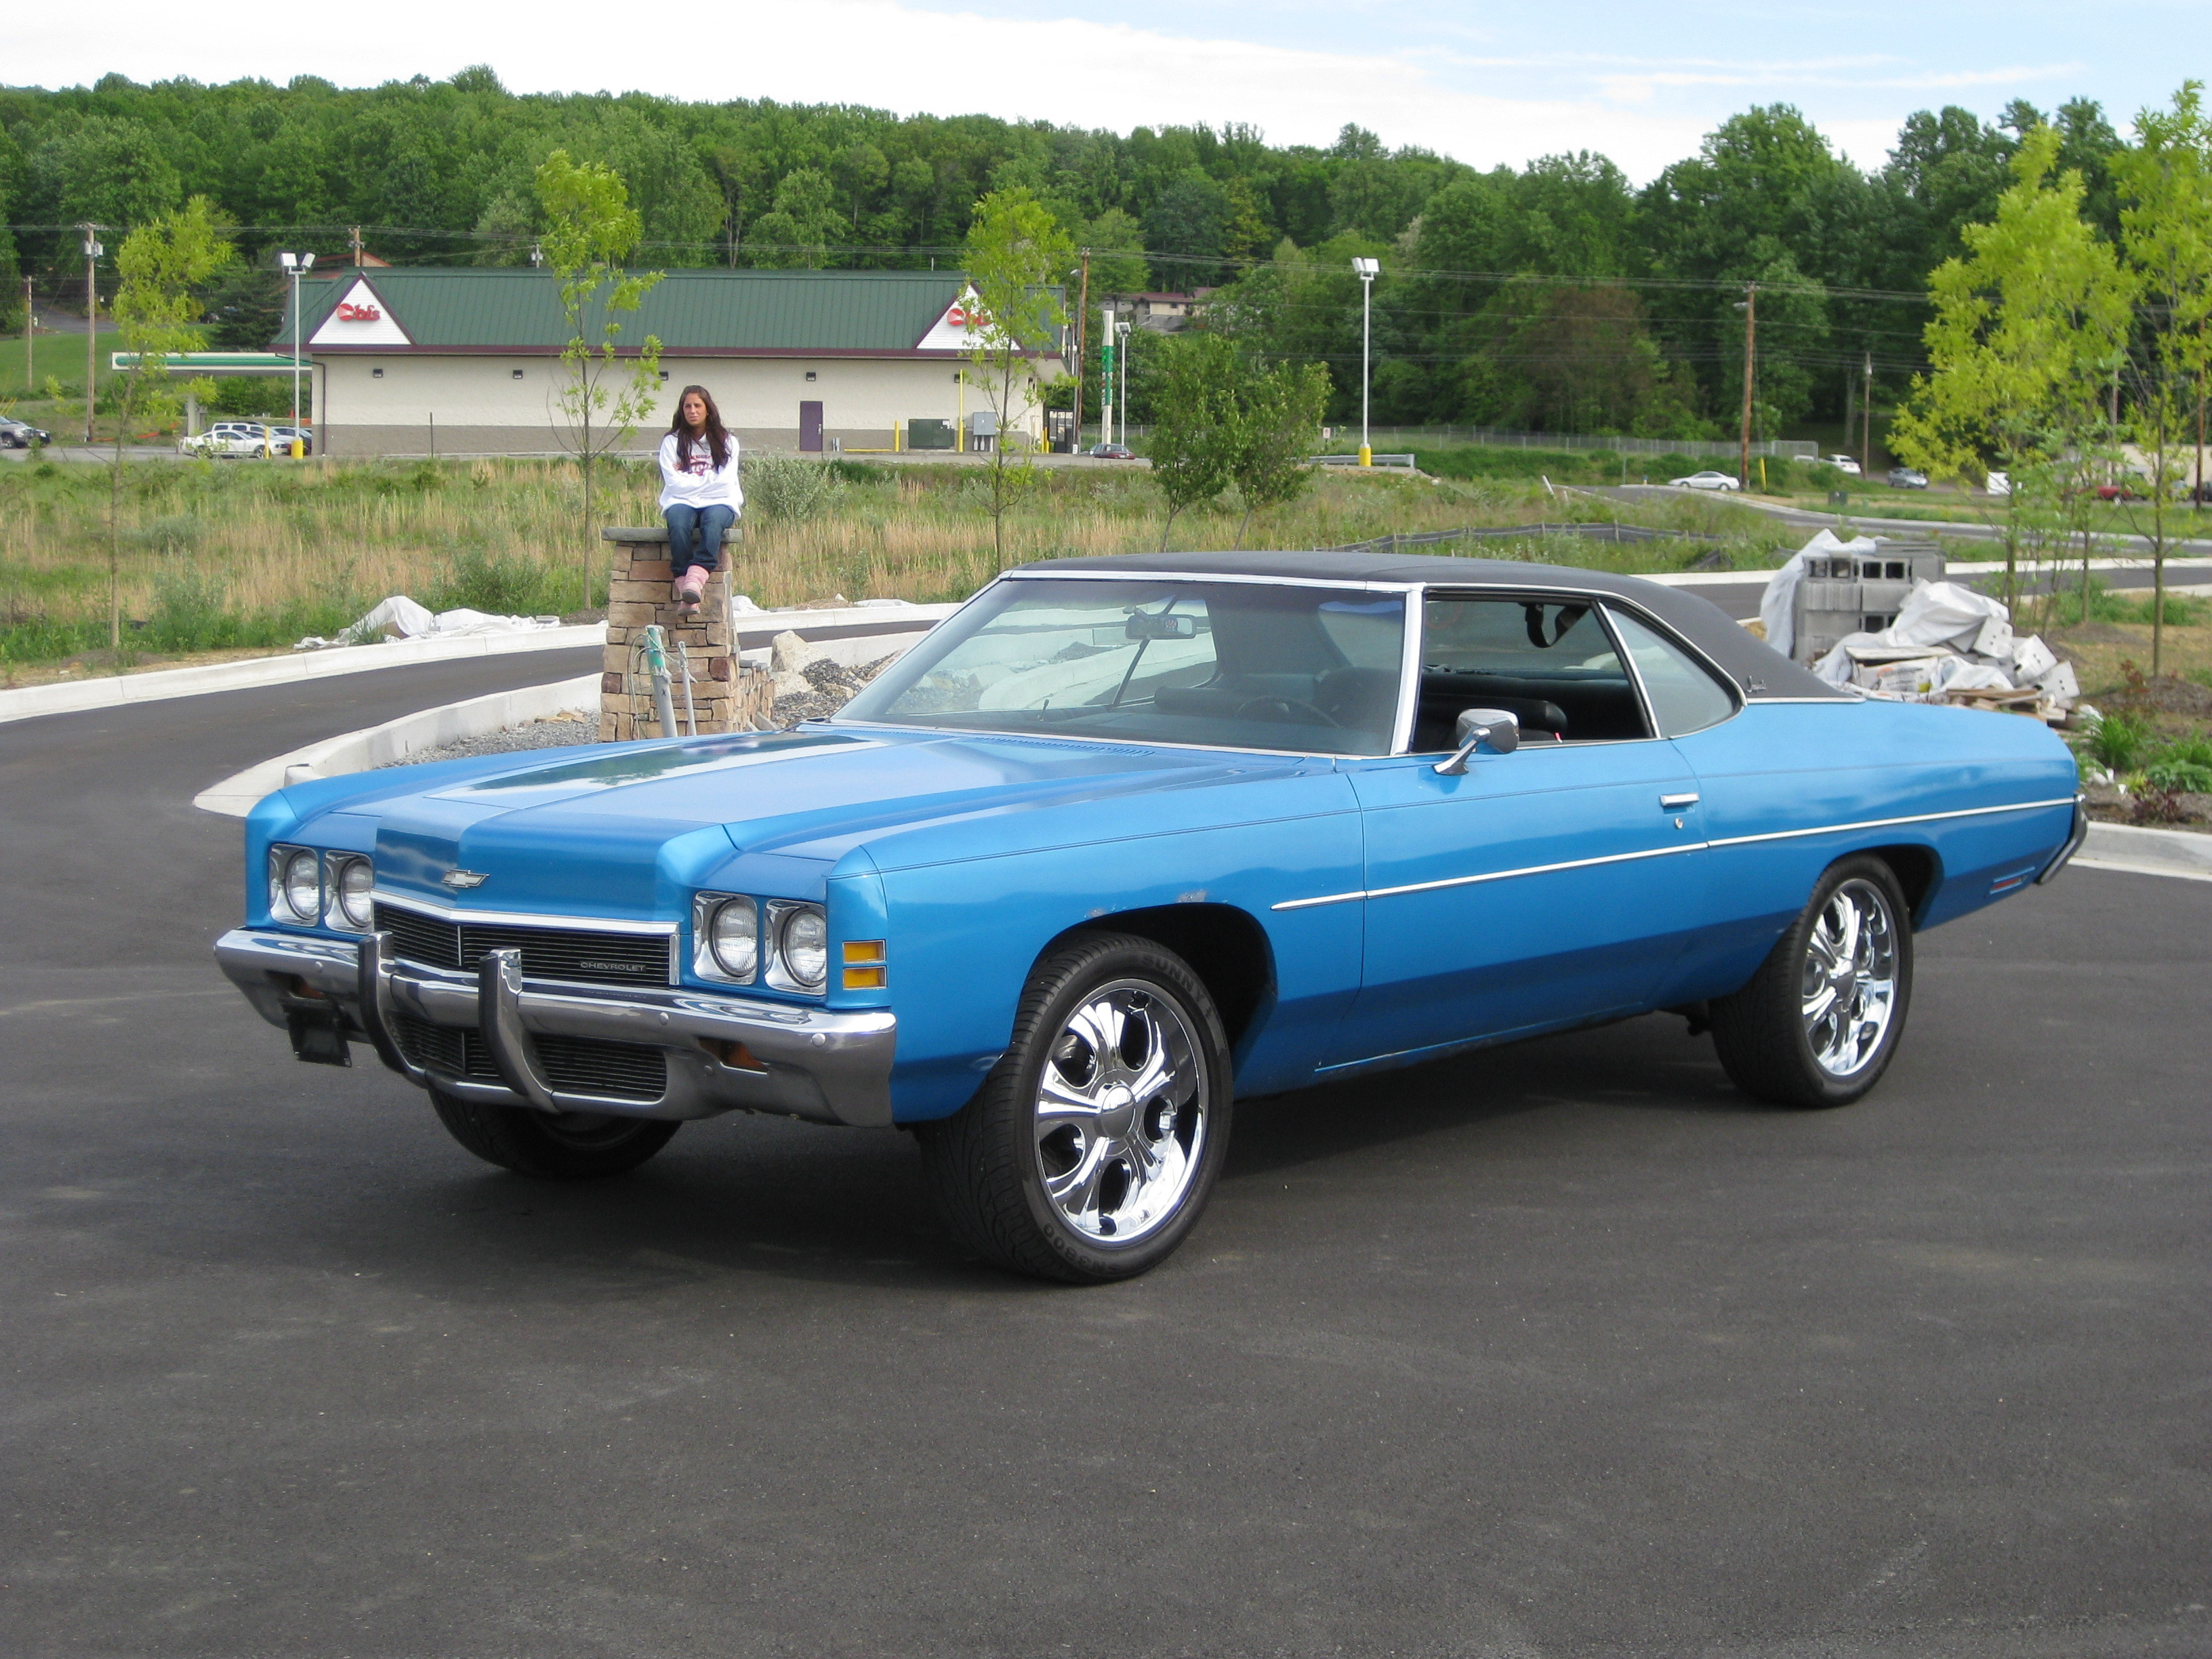 1974 Chevrolet Impala Pictures C4324 pi9396946 in addition Watch furthermore 2001 Chevrolet Malibu Pictures C870 pi35677215 together with Interior 20Color 72680137 furthermore 19707147. on chevy 2003 chevrolet impala interior